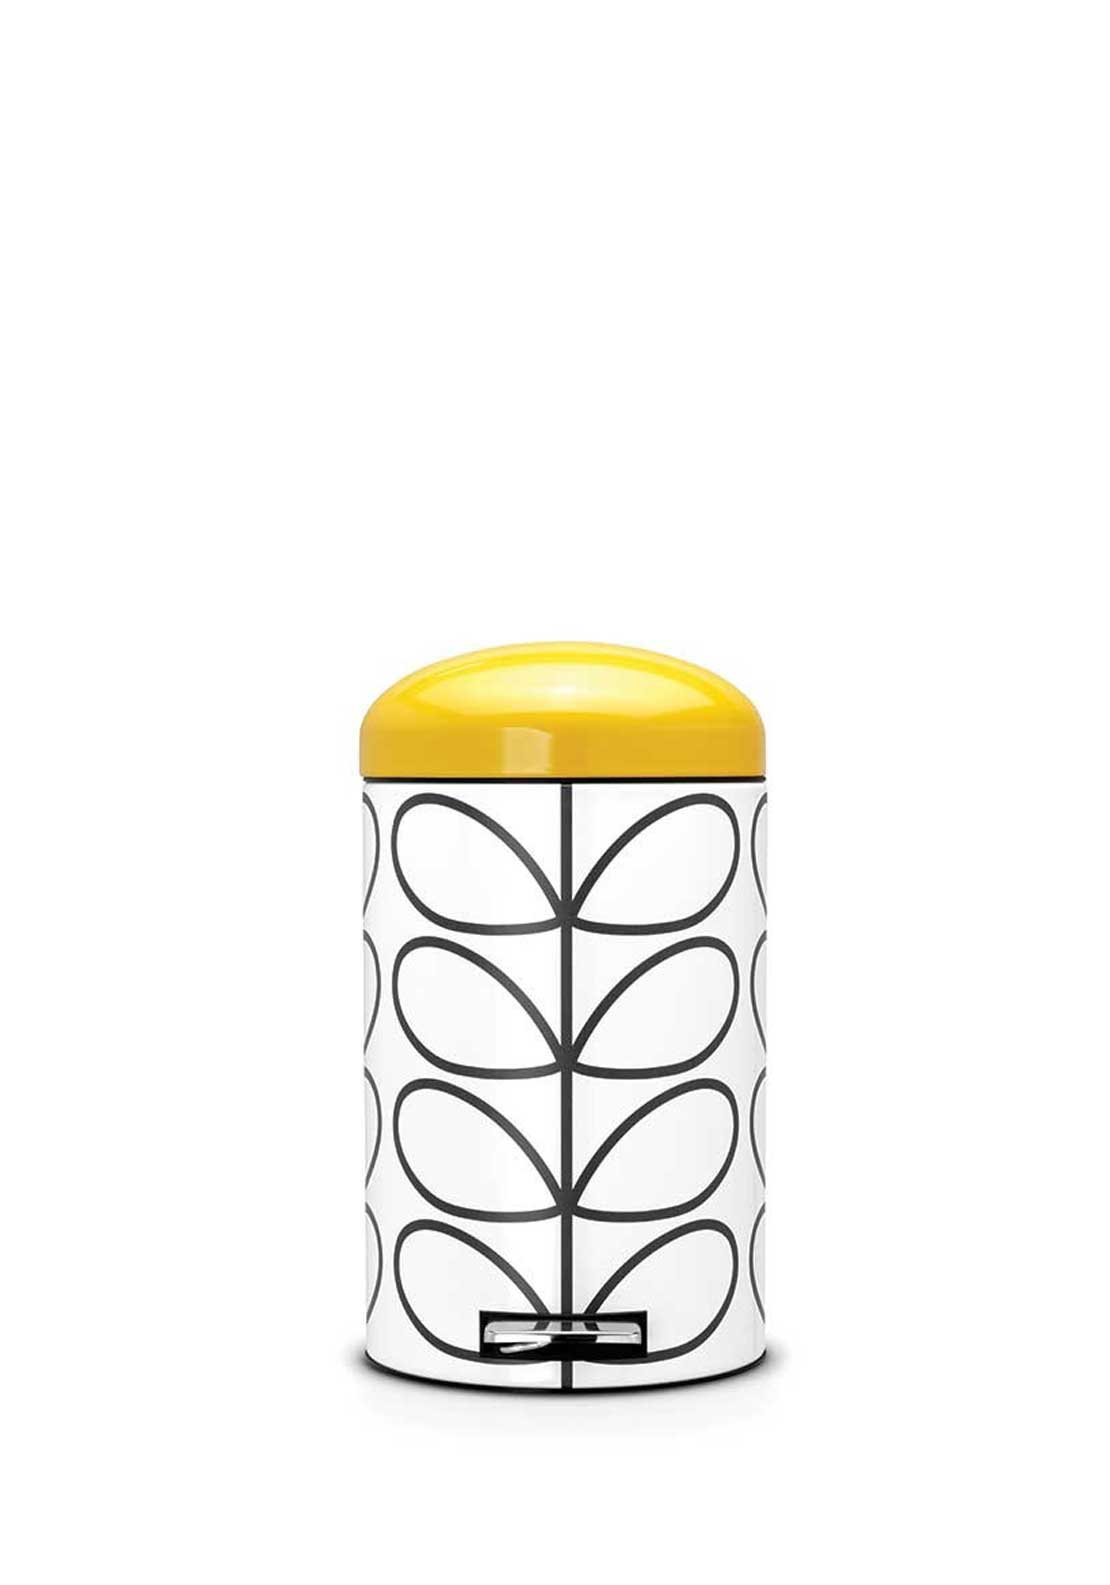 Orla Kiely Retro Silent Bin by Brabantia in Linear Stem Print, Cream, 12ltr